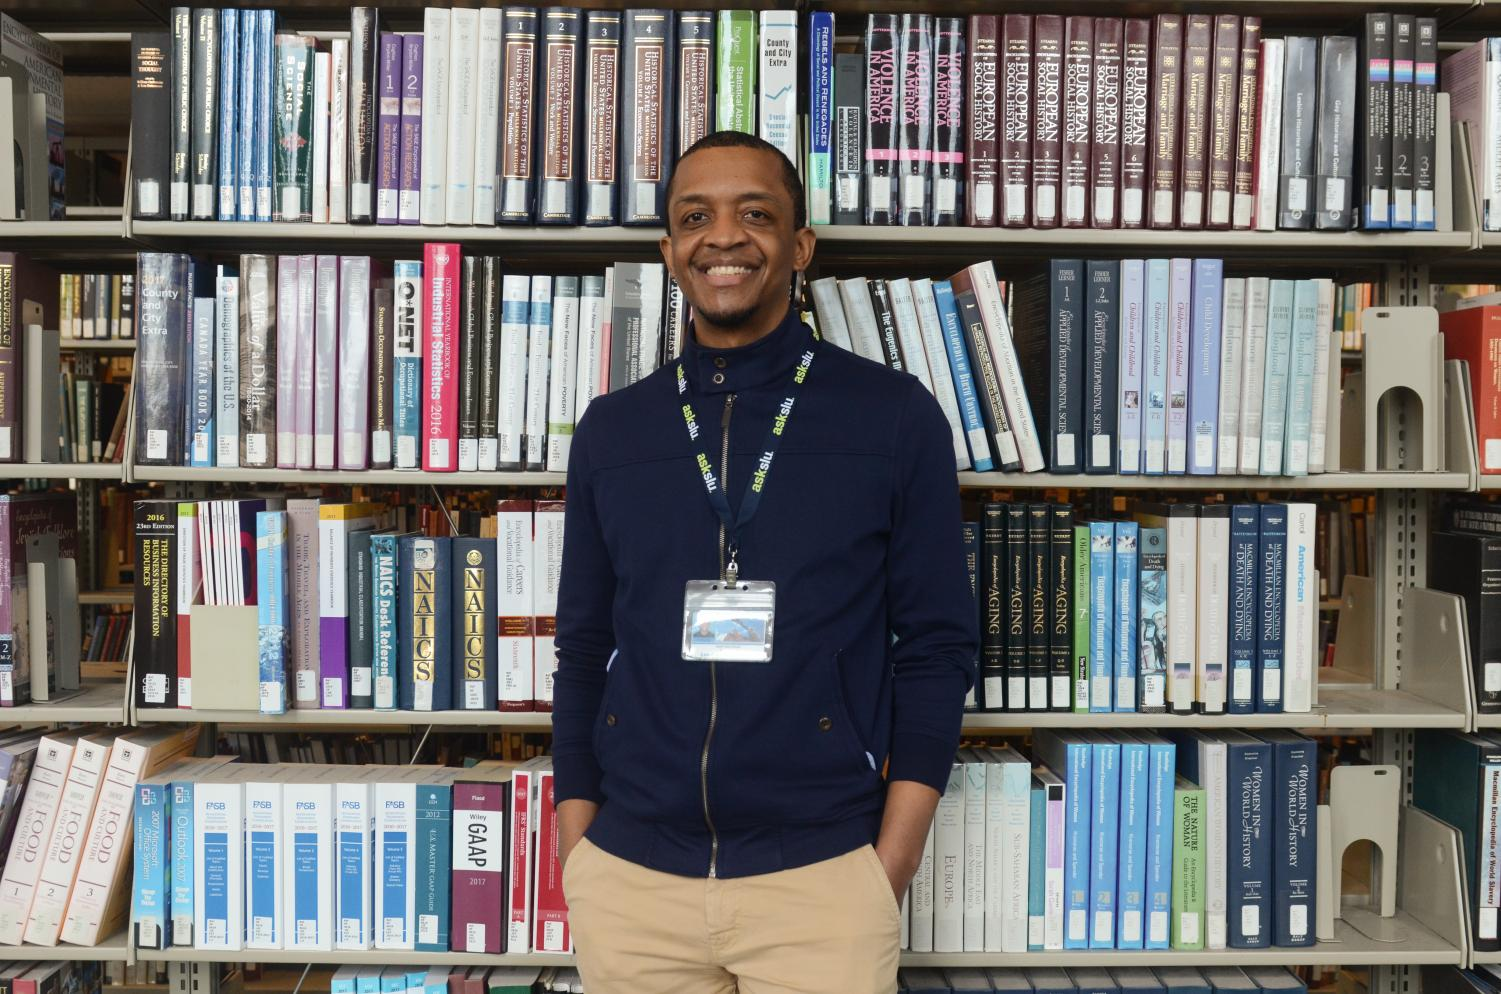 In honor of National Library Worker's Day, today April 10, I asked Lee Cummings, SLU library's STEM Research and Instruction Librarian, to sit down and speak with me about his work at Pius XII Library.